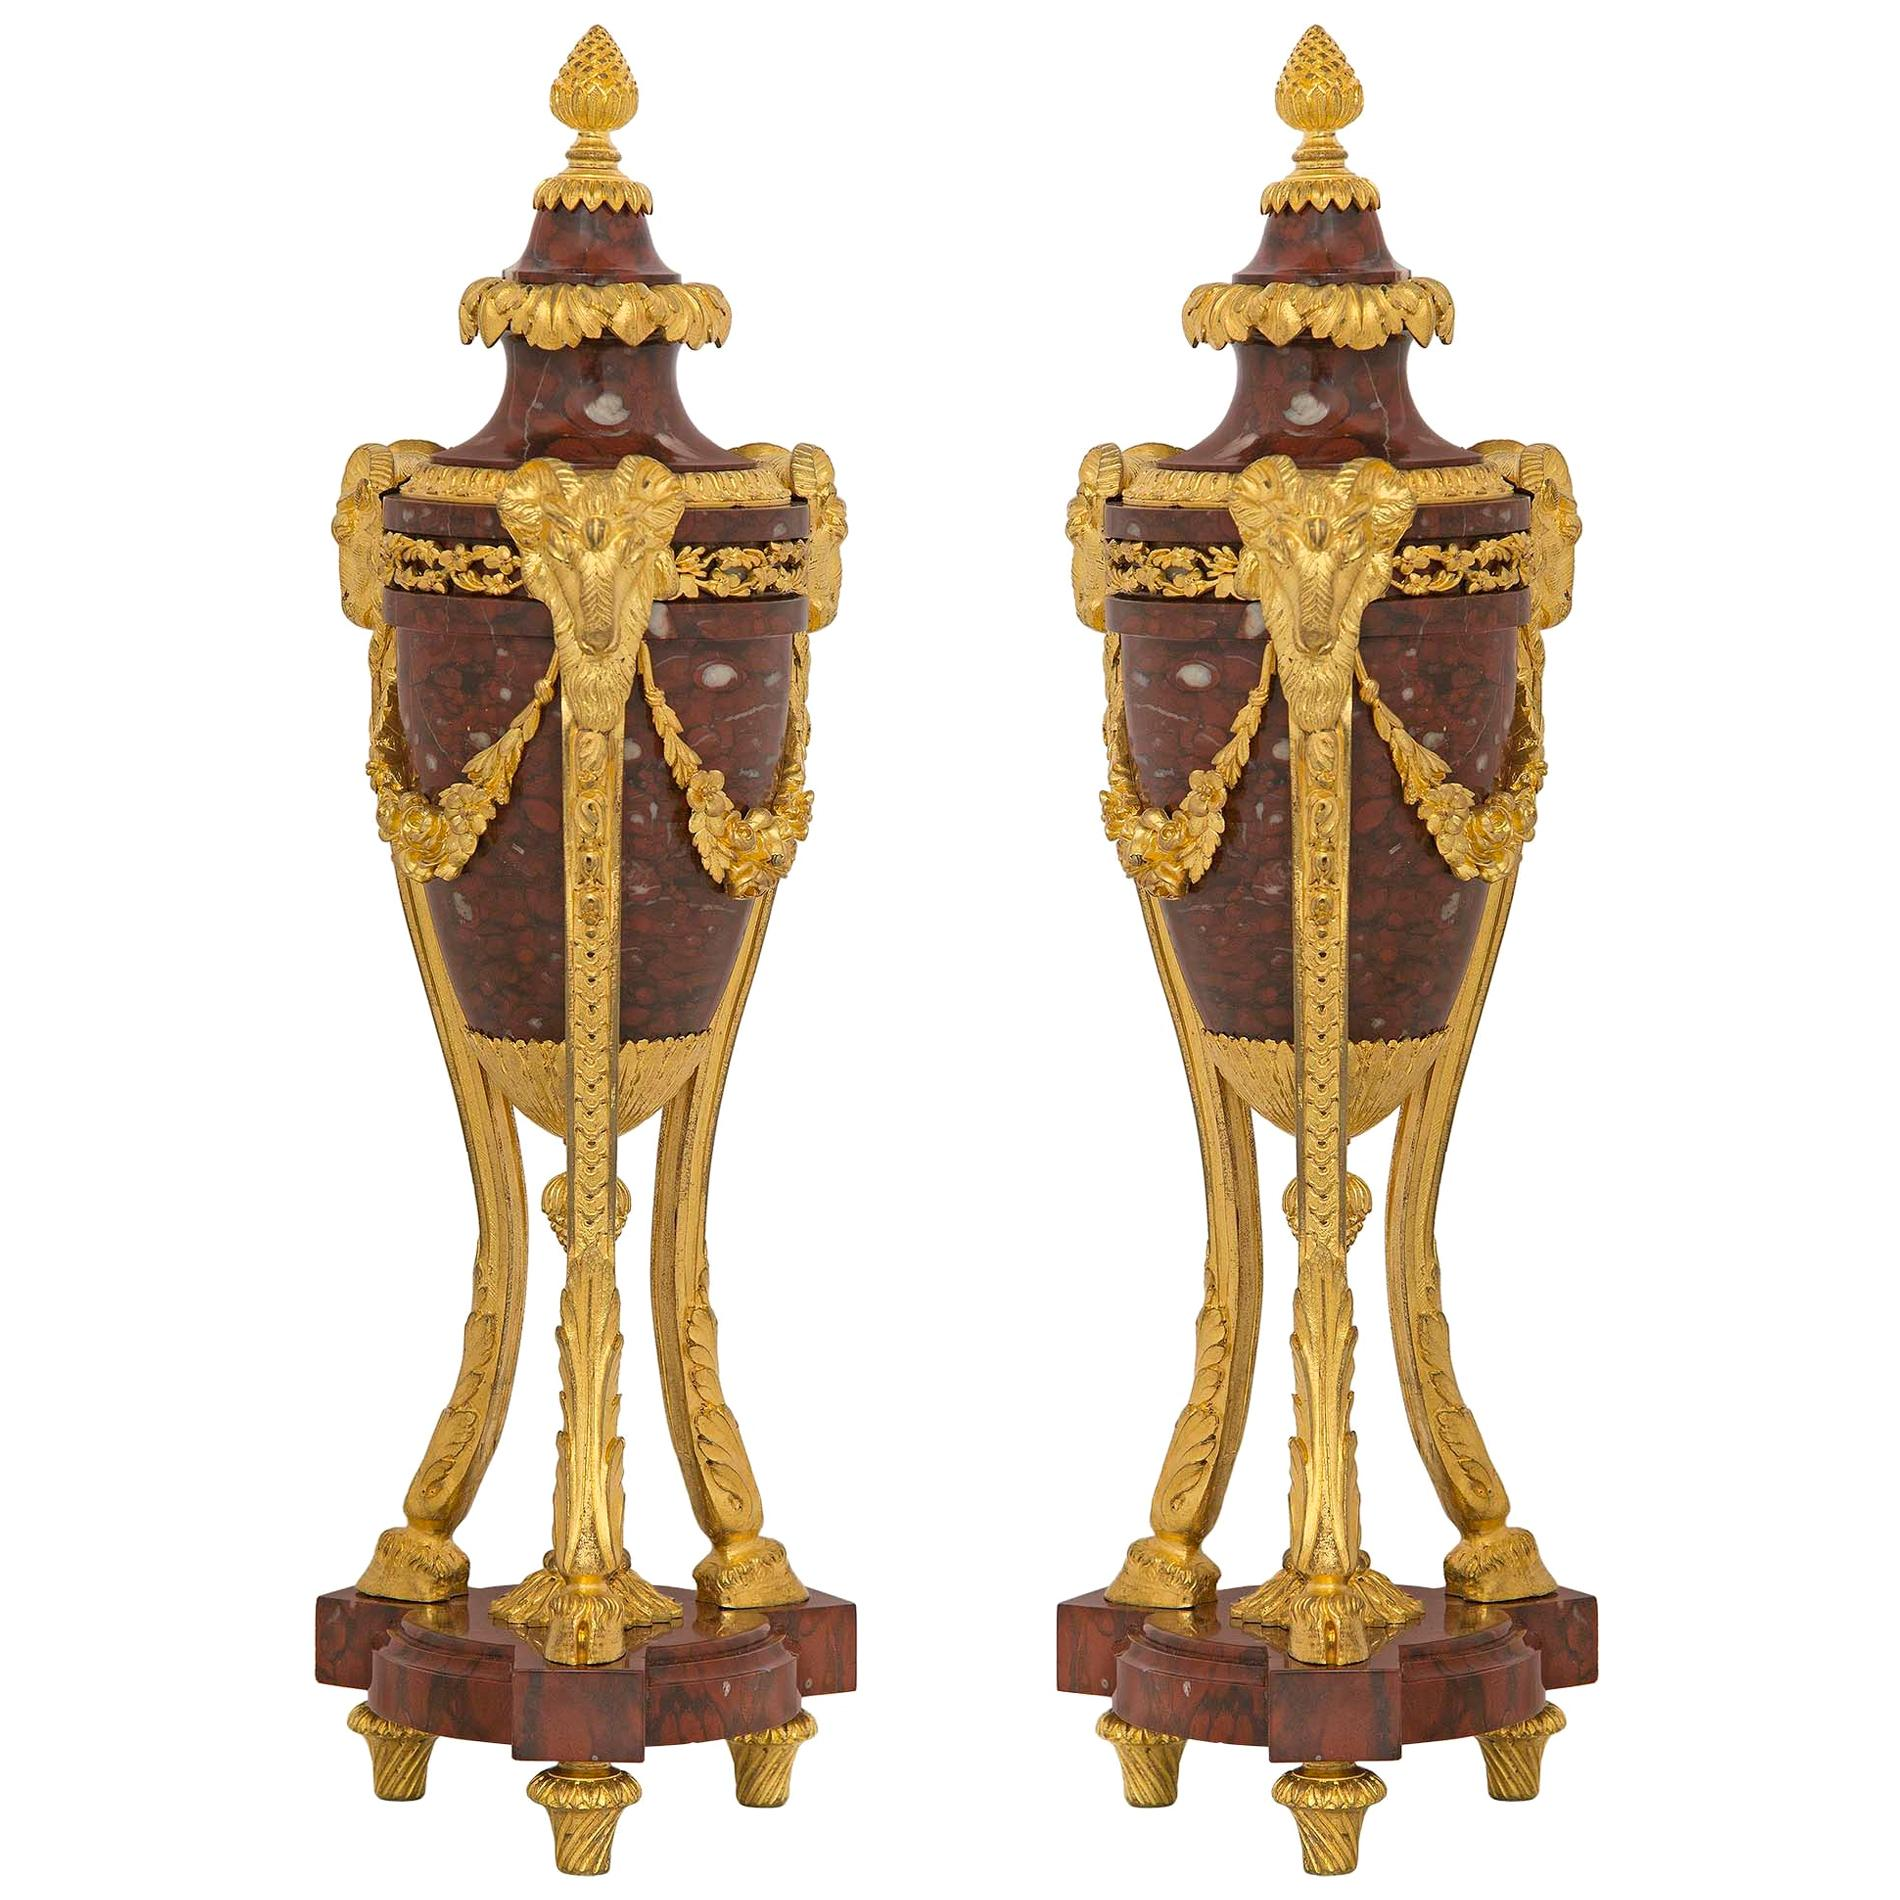 Pair of French 19th Century Louis XVI Style Marble and Ormolu Cassolettes